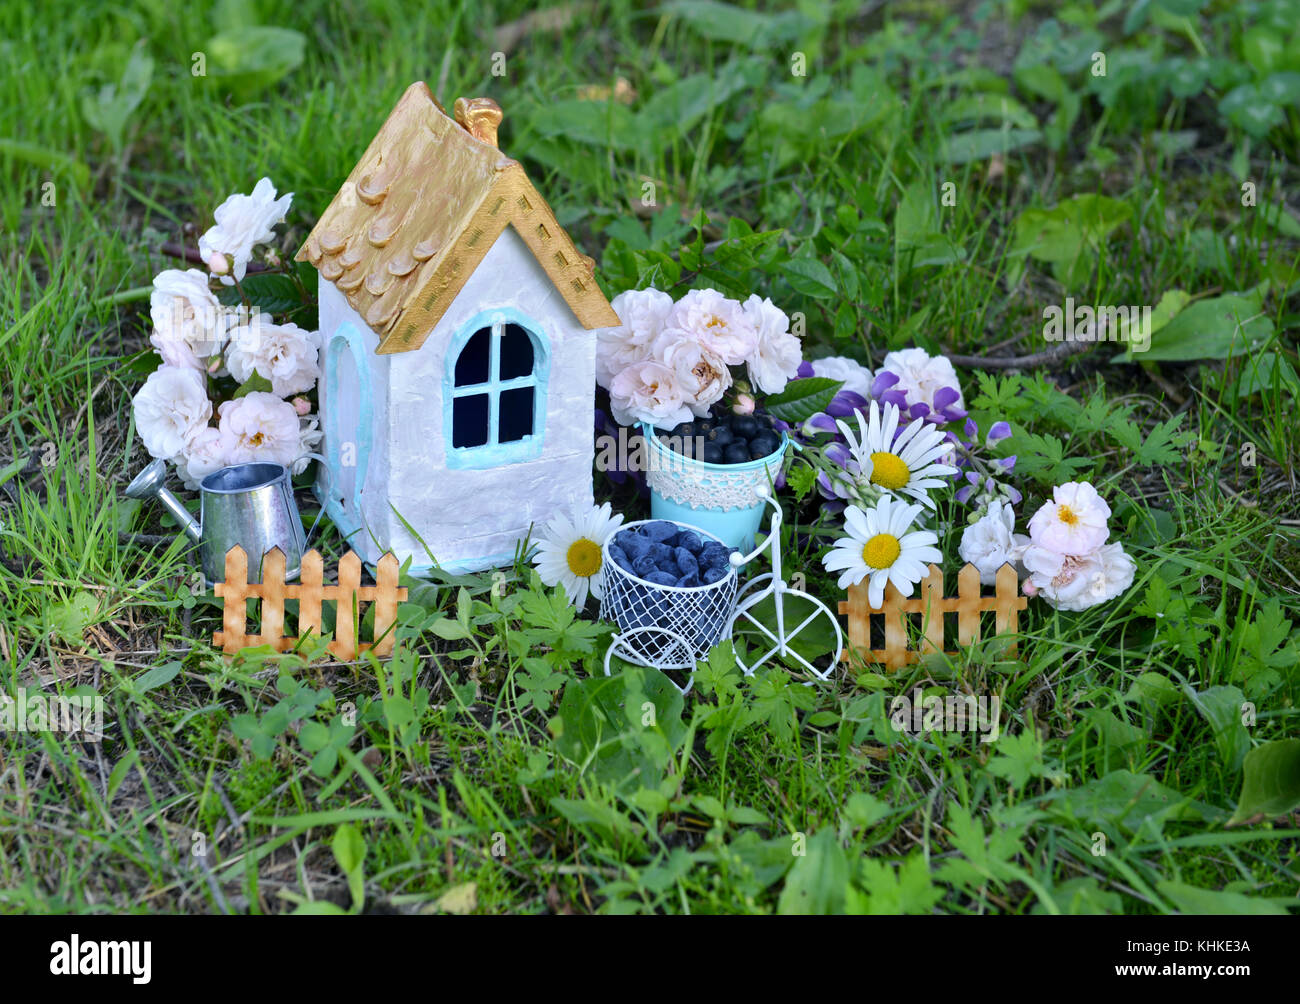 Small white house with roses and daisy flowers in the garden - Stock Image